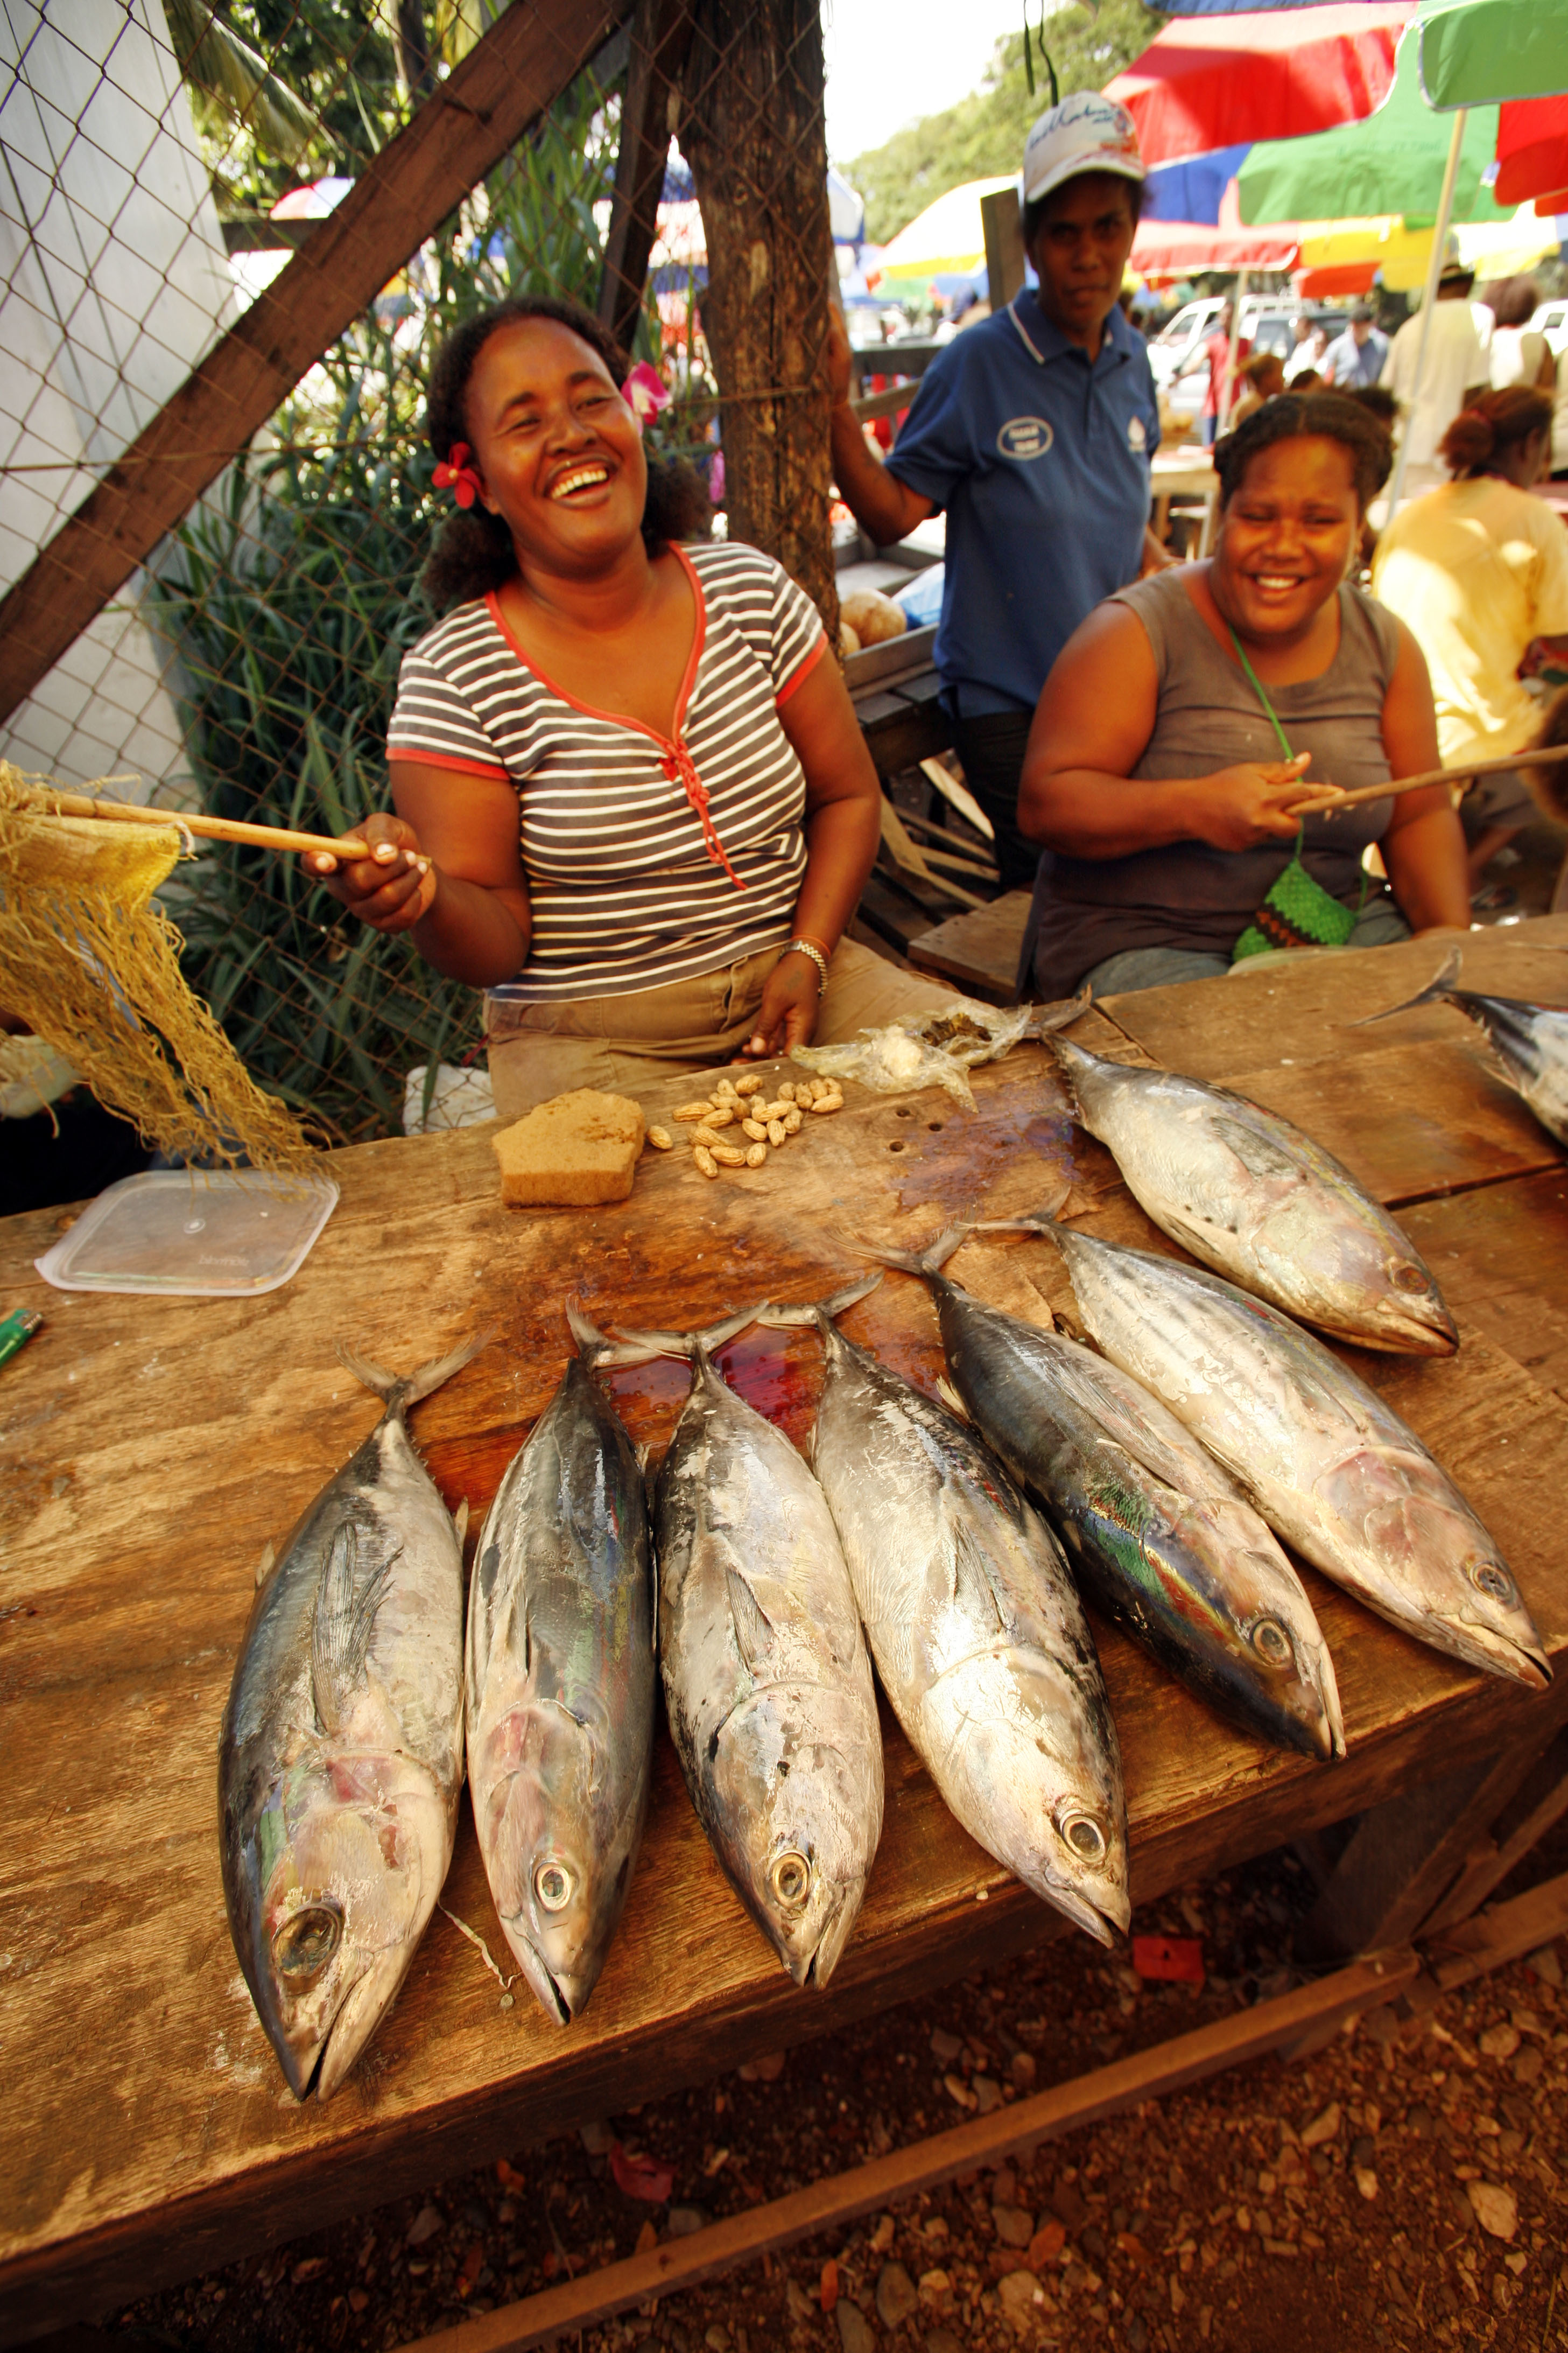 Fish for sale at an open-air market in Honiara, Solomon Islands Photo by Rob Maccoll for AusAID